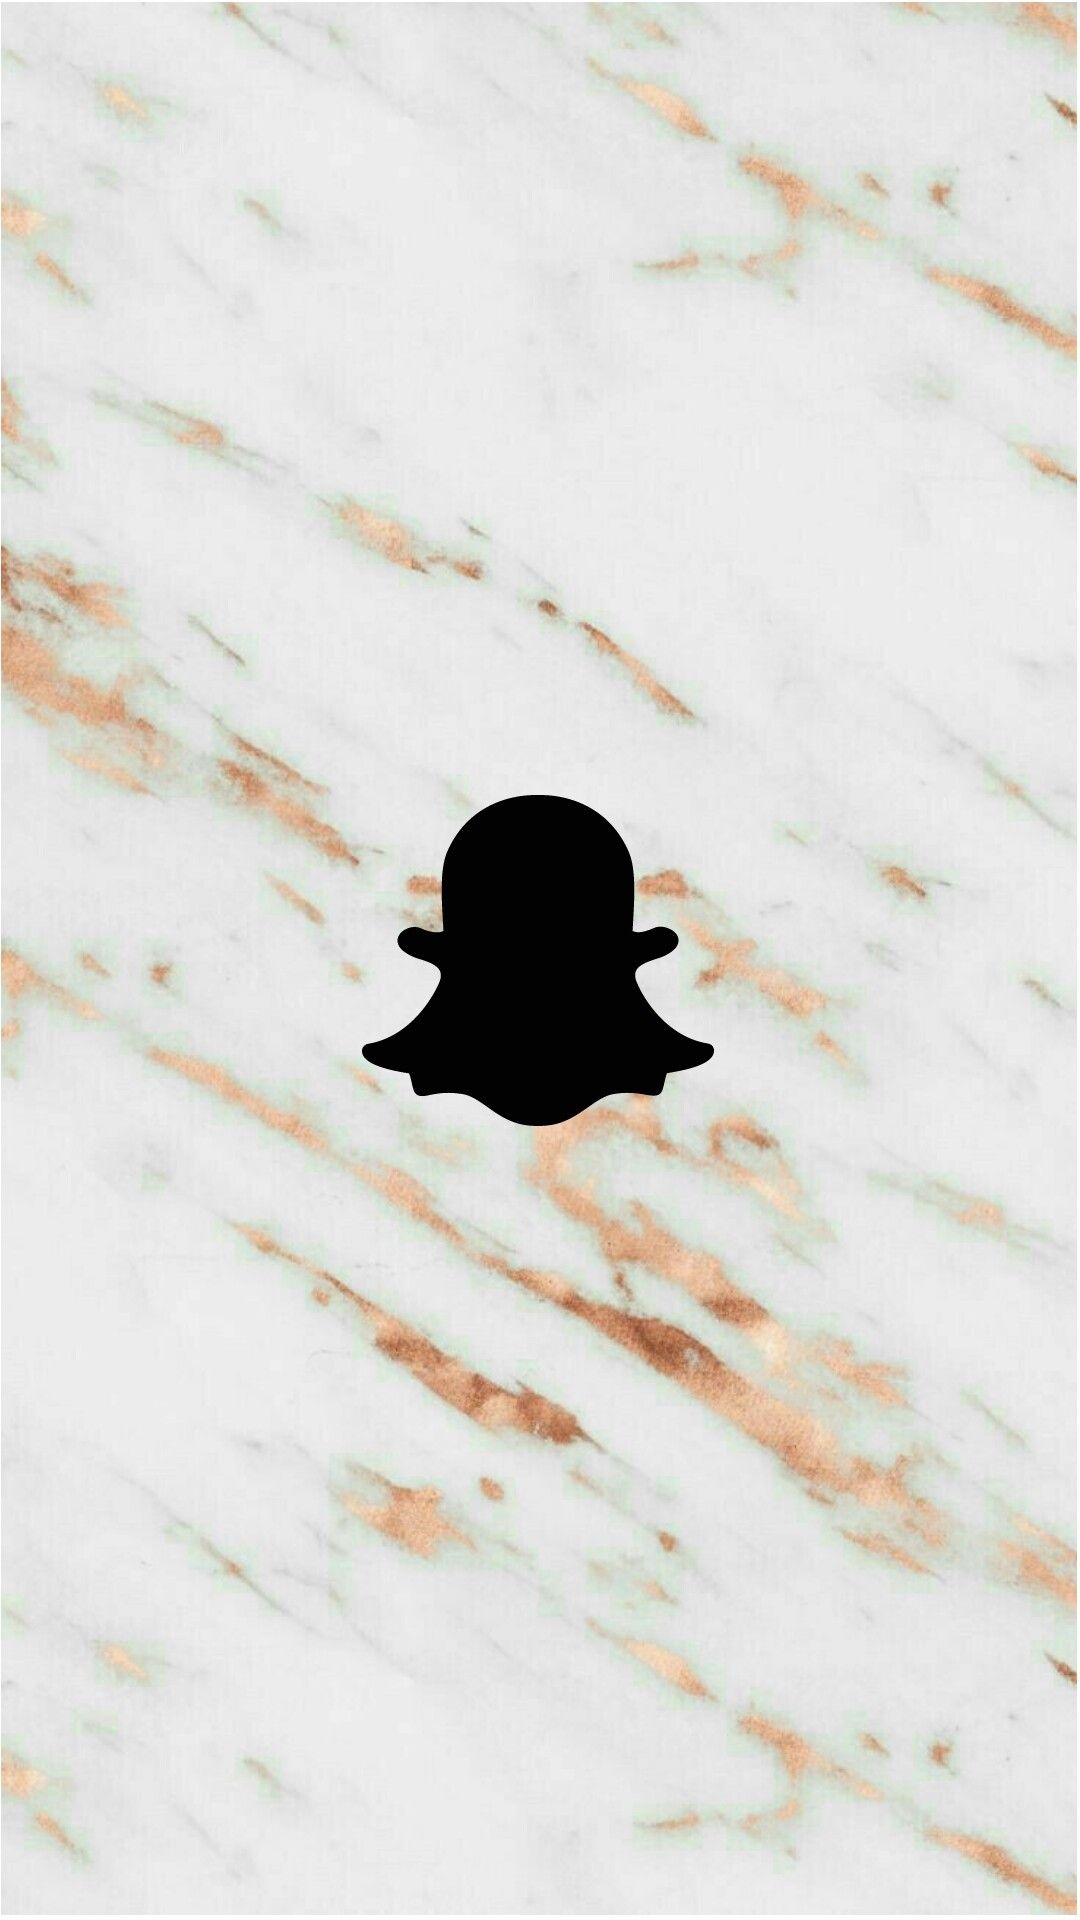 Pin by Ako on Instagram highlights cover Snapchat icon